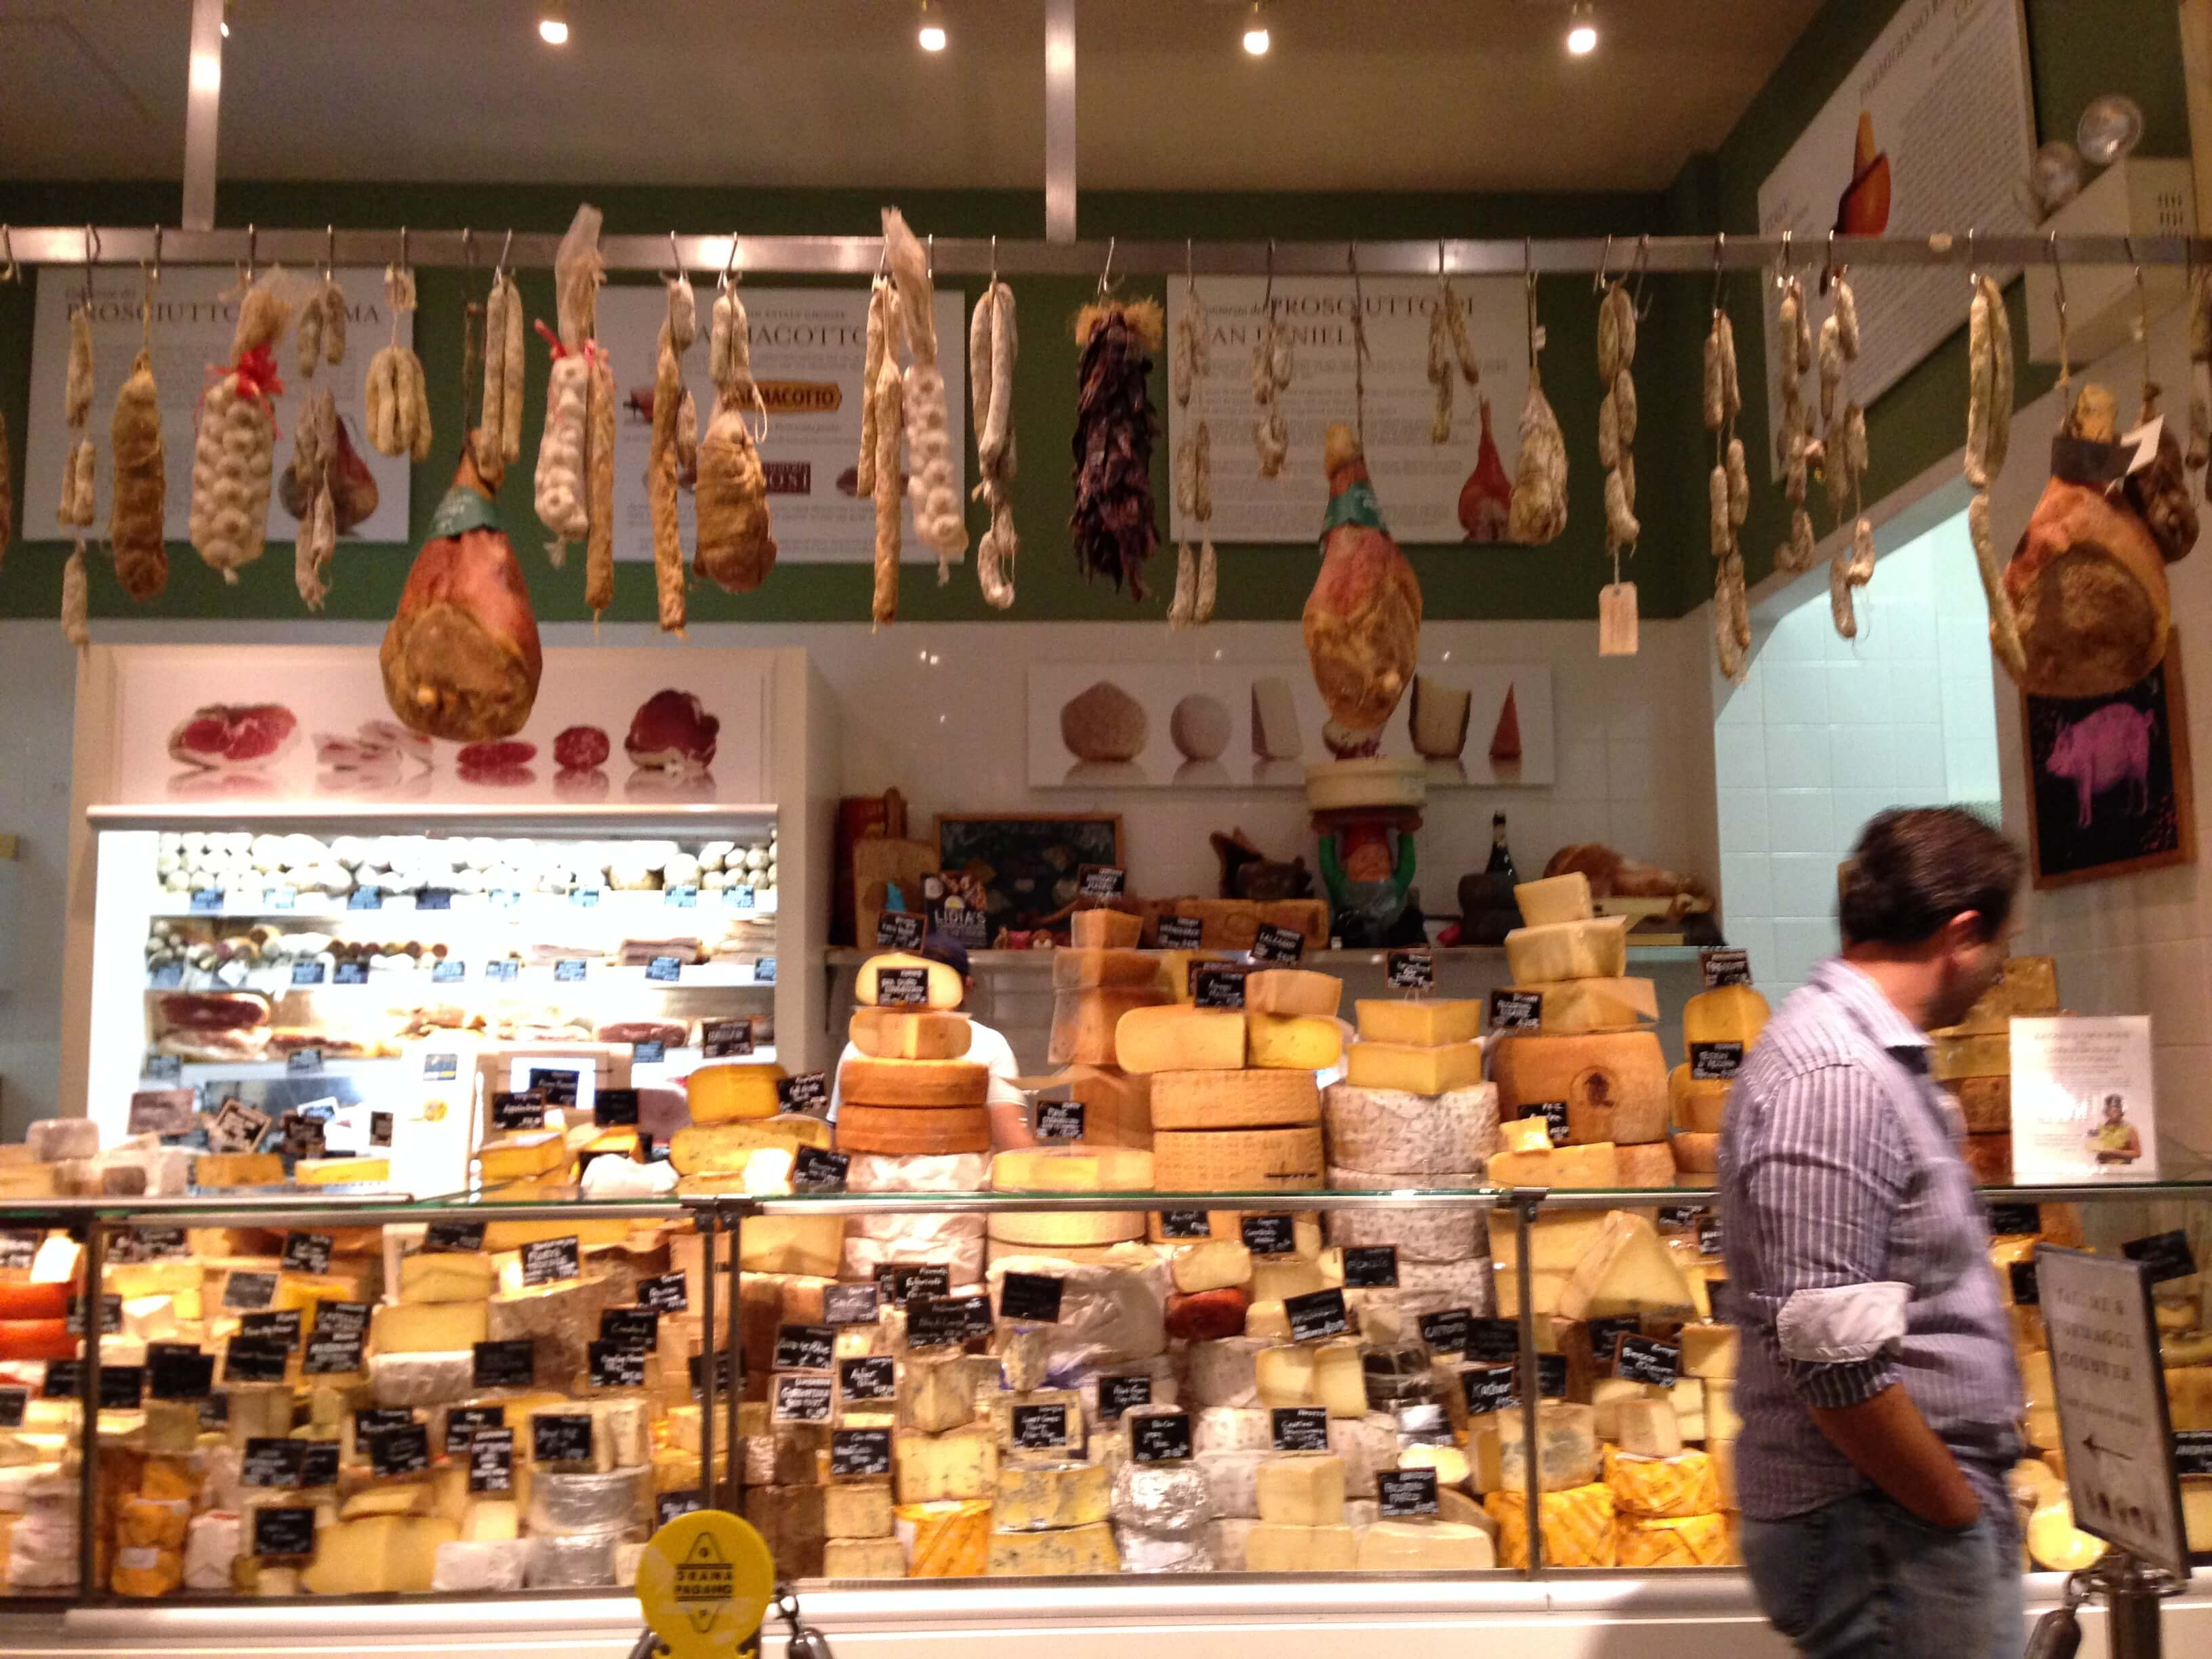 I took my time browsing Eataly in NYC!